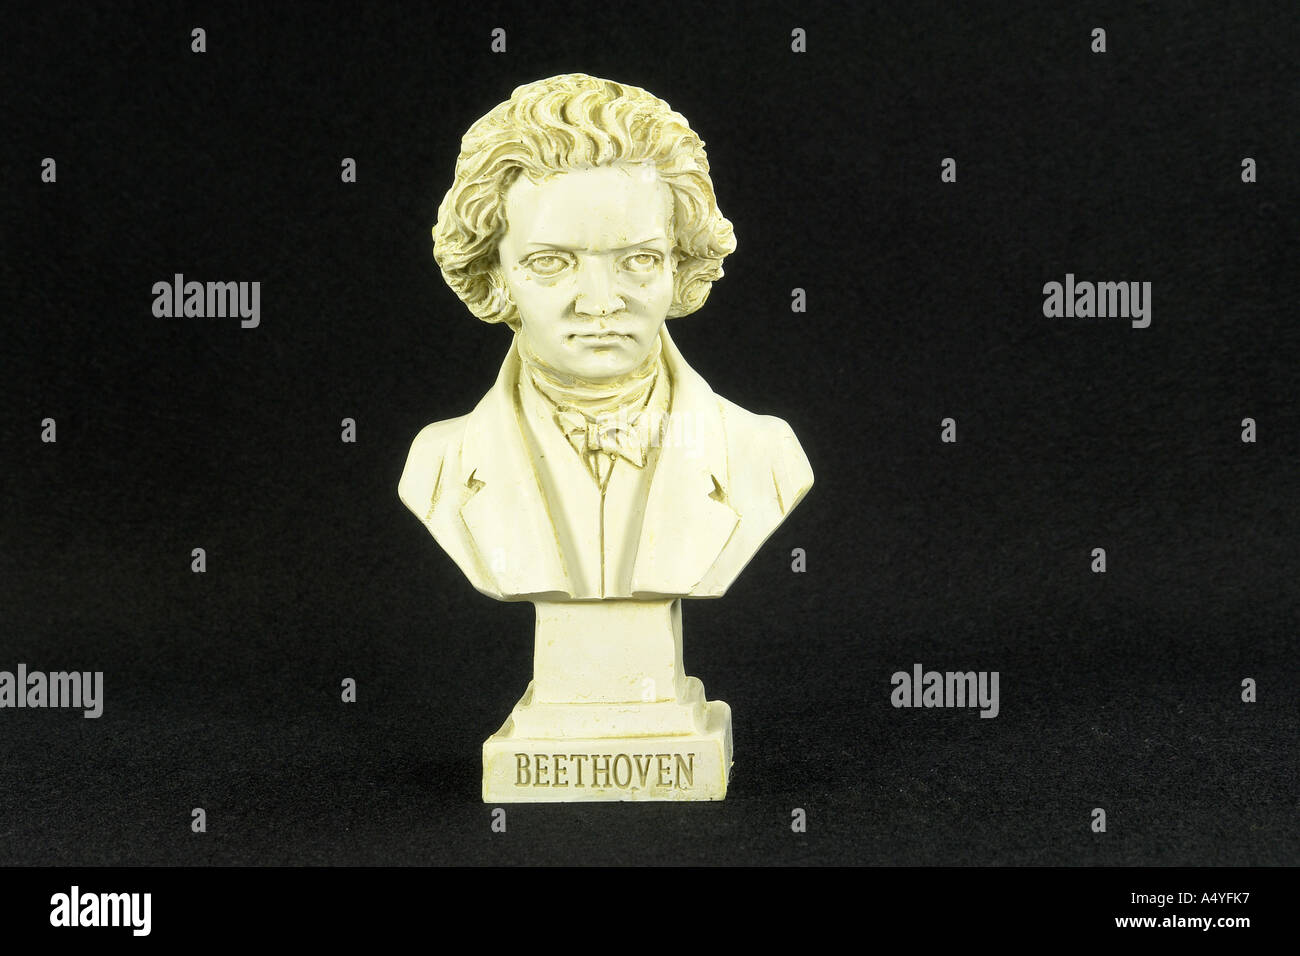 Ludwig van Beethoven born on 16 December 1770 in Bonn, died 26 March 1827 in Vienna, composer - Stock Image